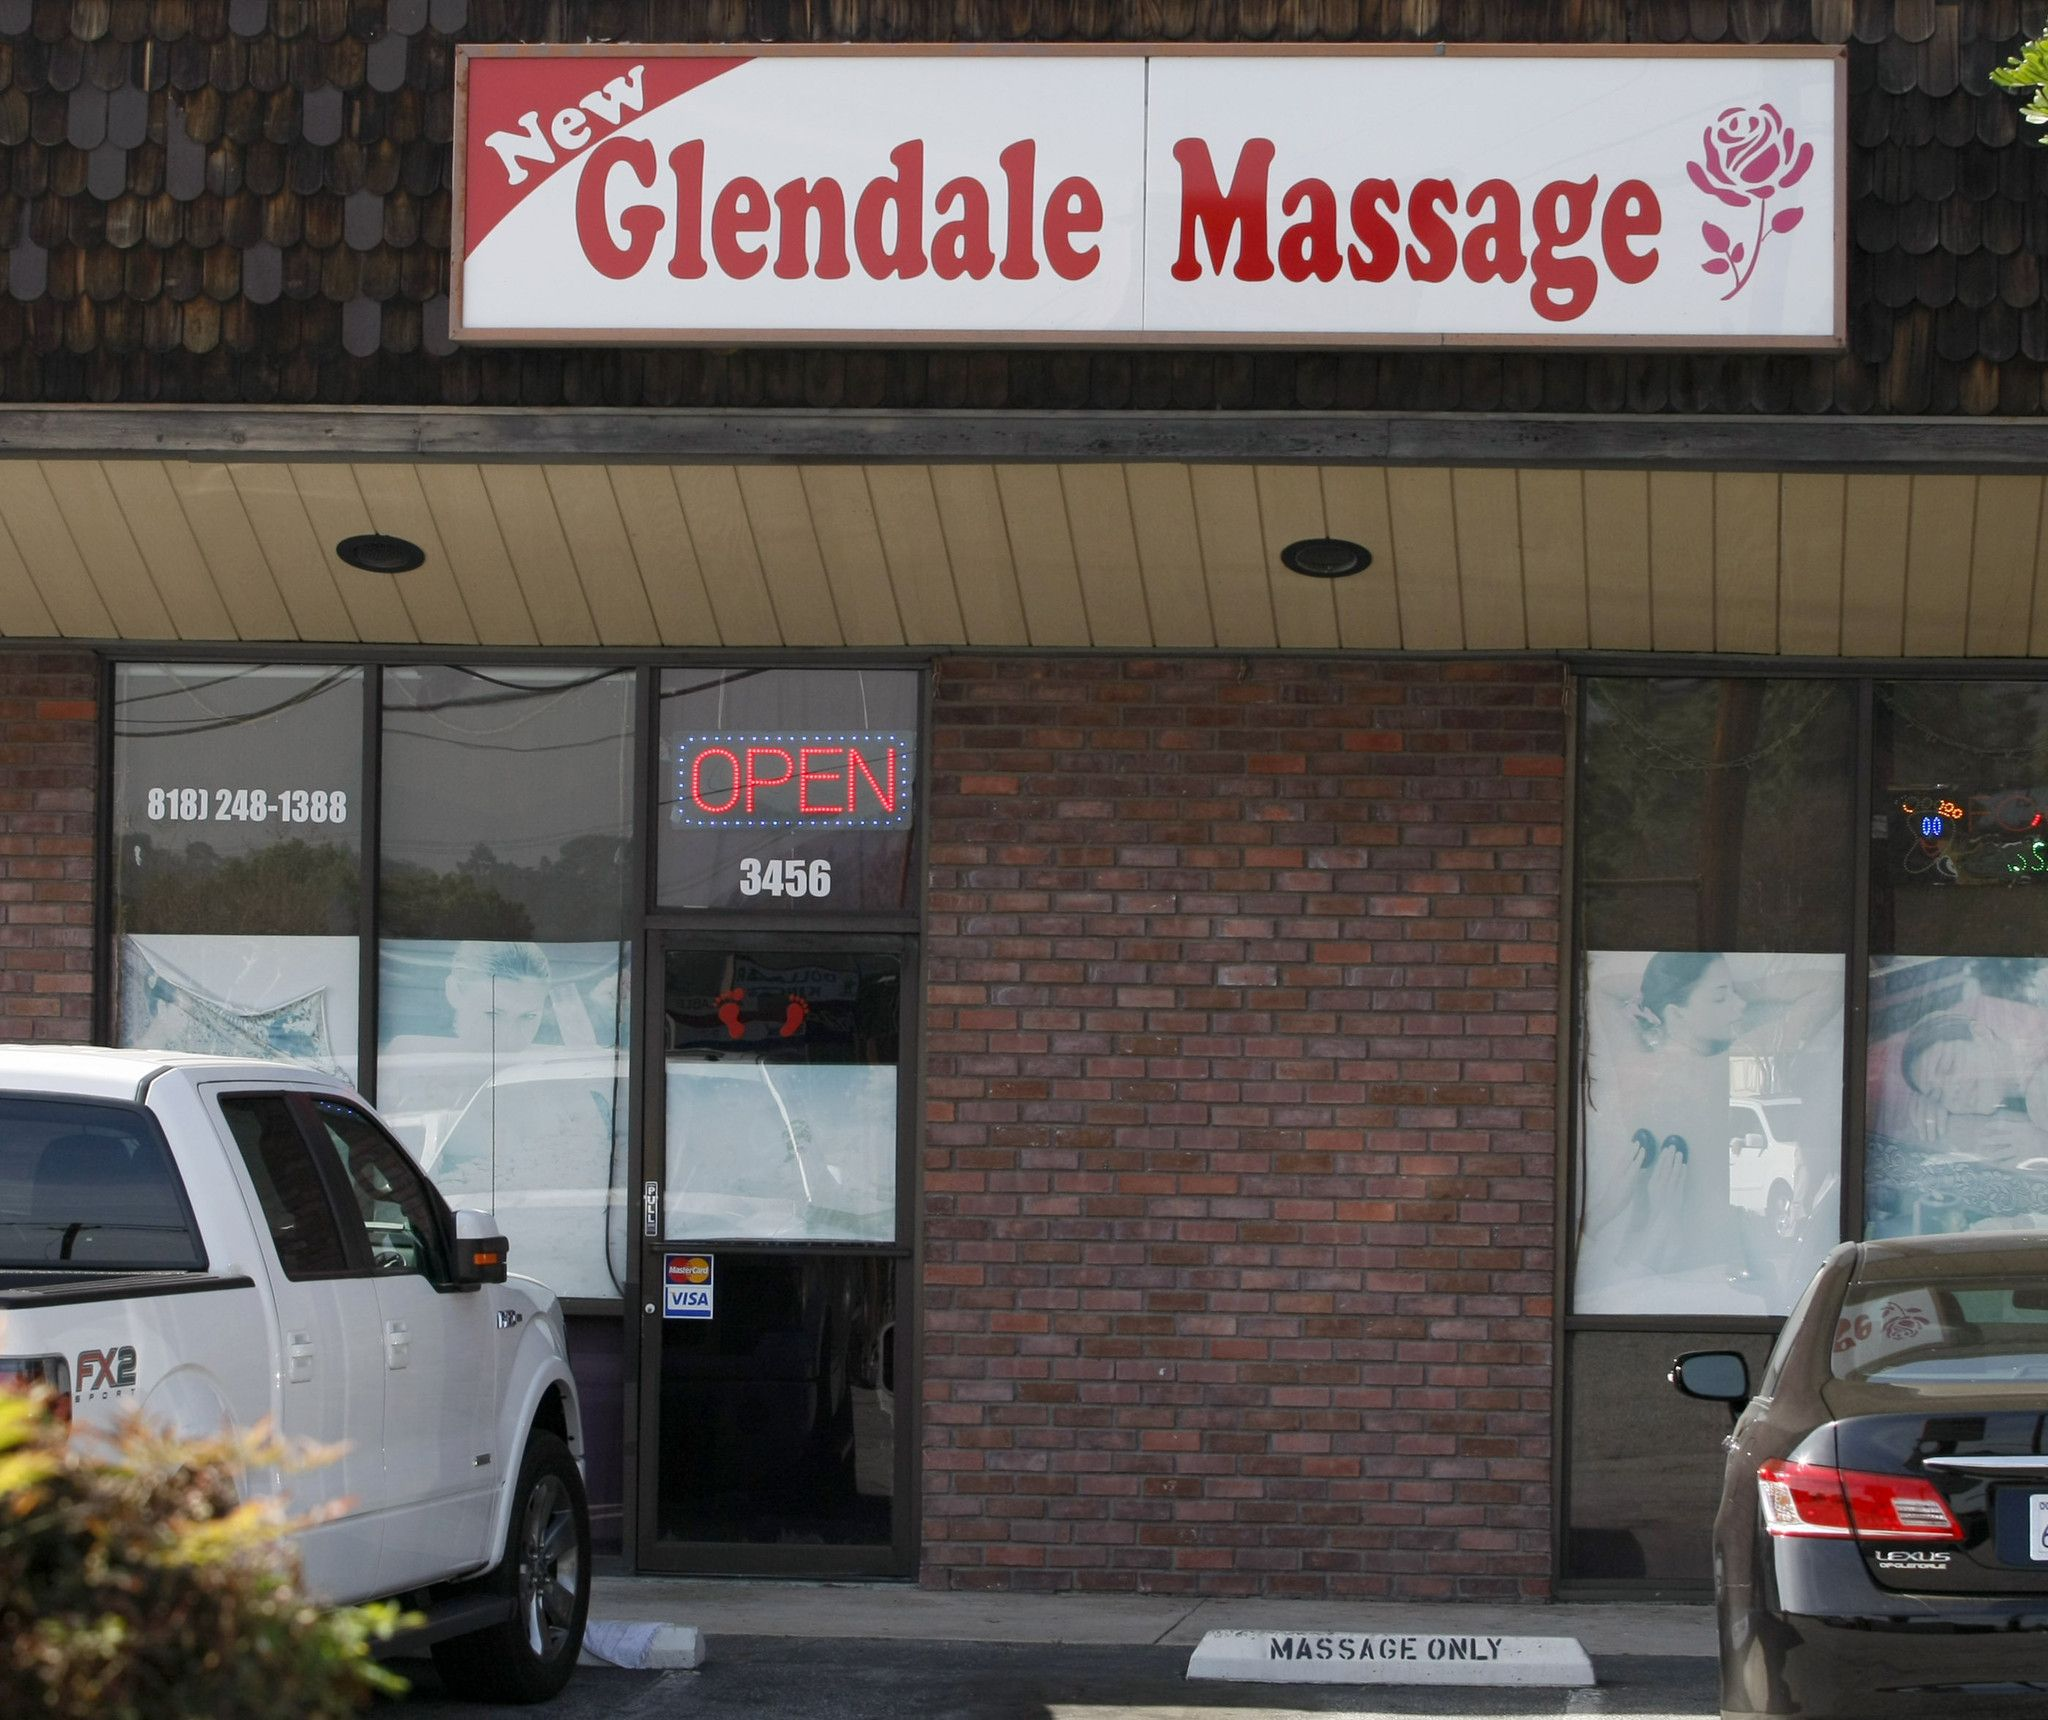 Council Votes To Require Permits For New Massage Parlors In Glendale Glendale Massage Business Massage Parlors